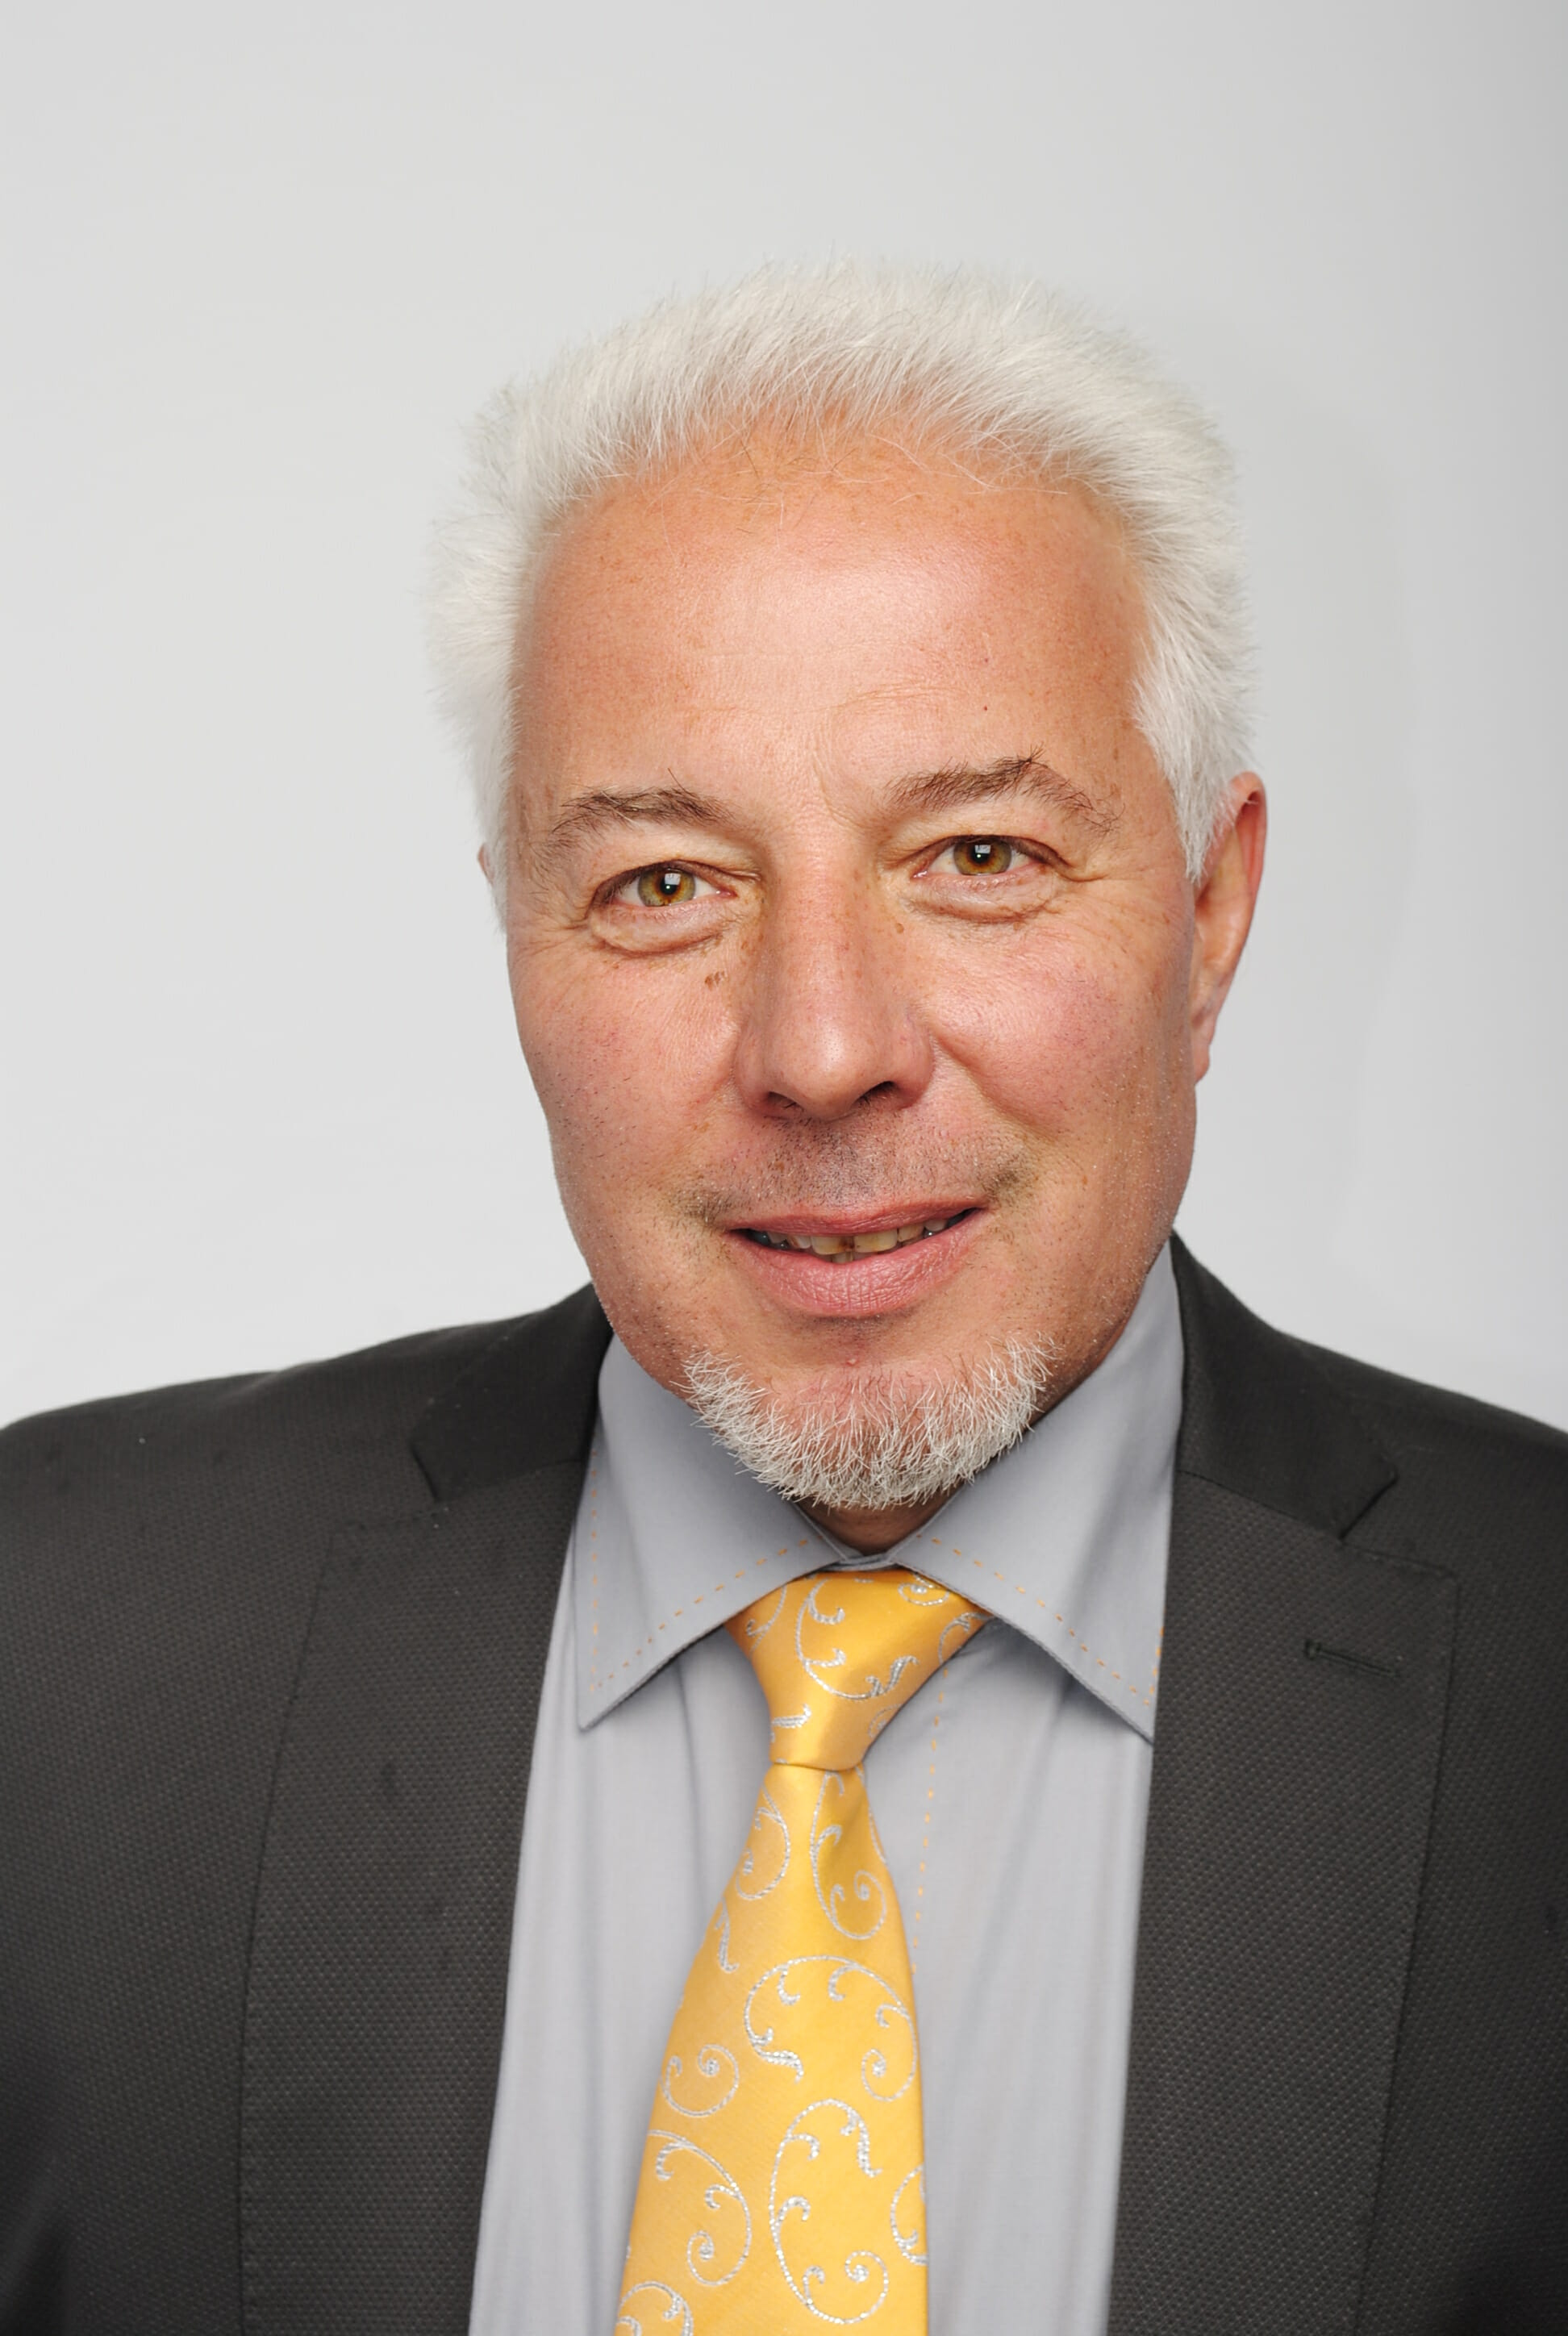 Wolfgang Grois ist Country Manager Sales bei Sophos Österreich. (c) Sophos